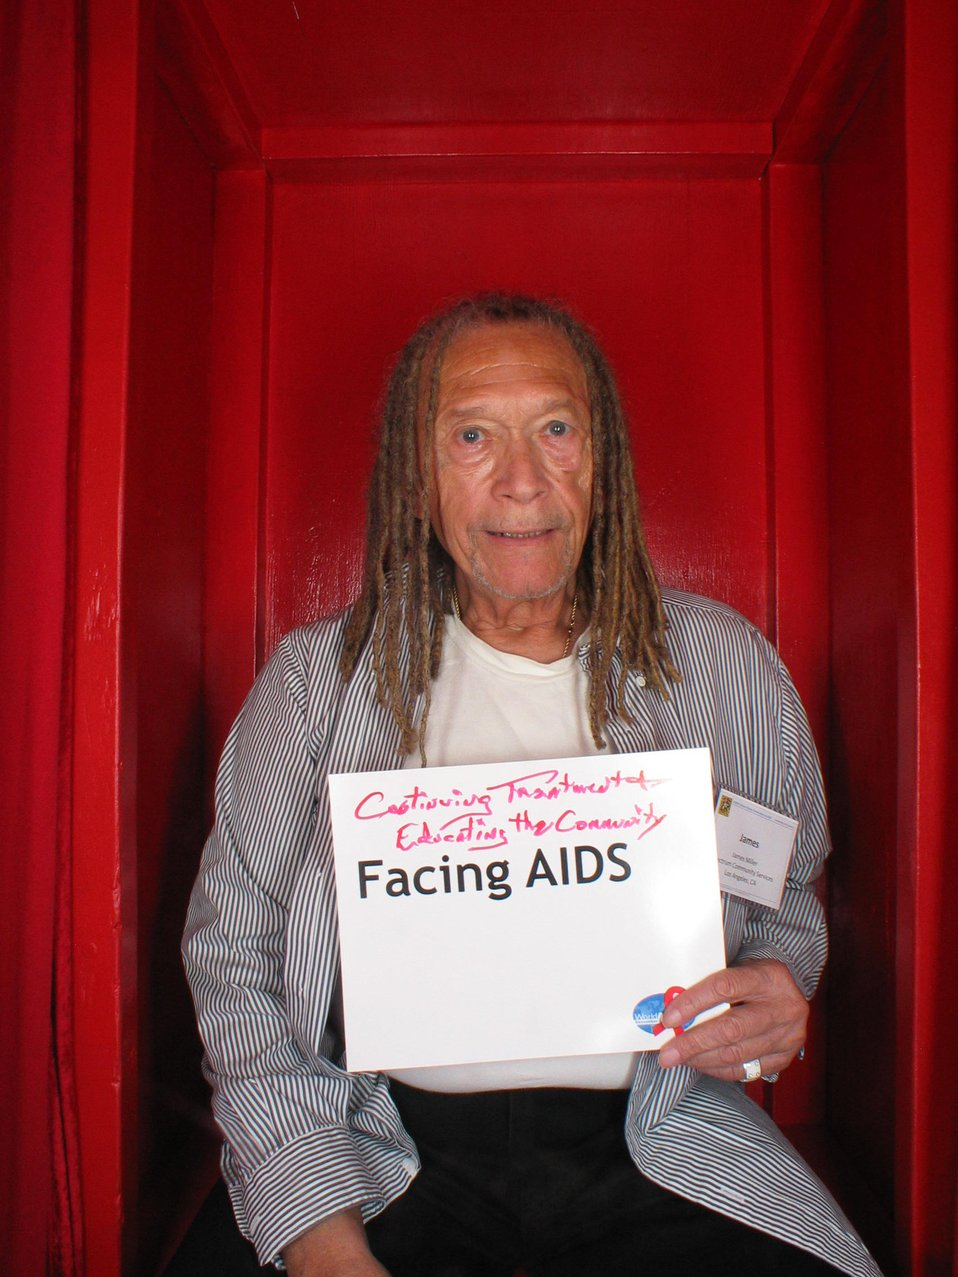 Facing AIDS...educating the community